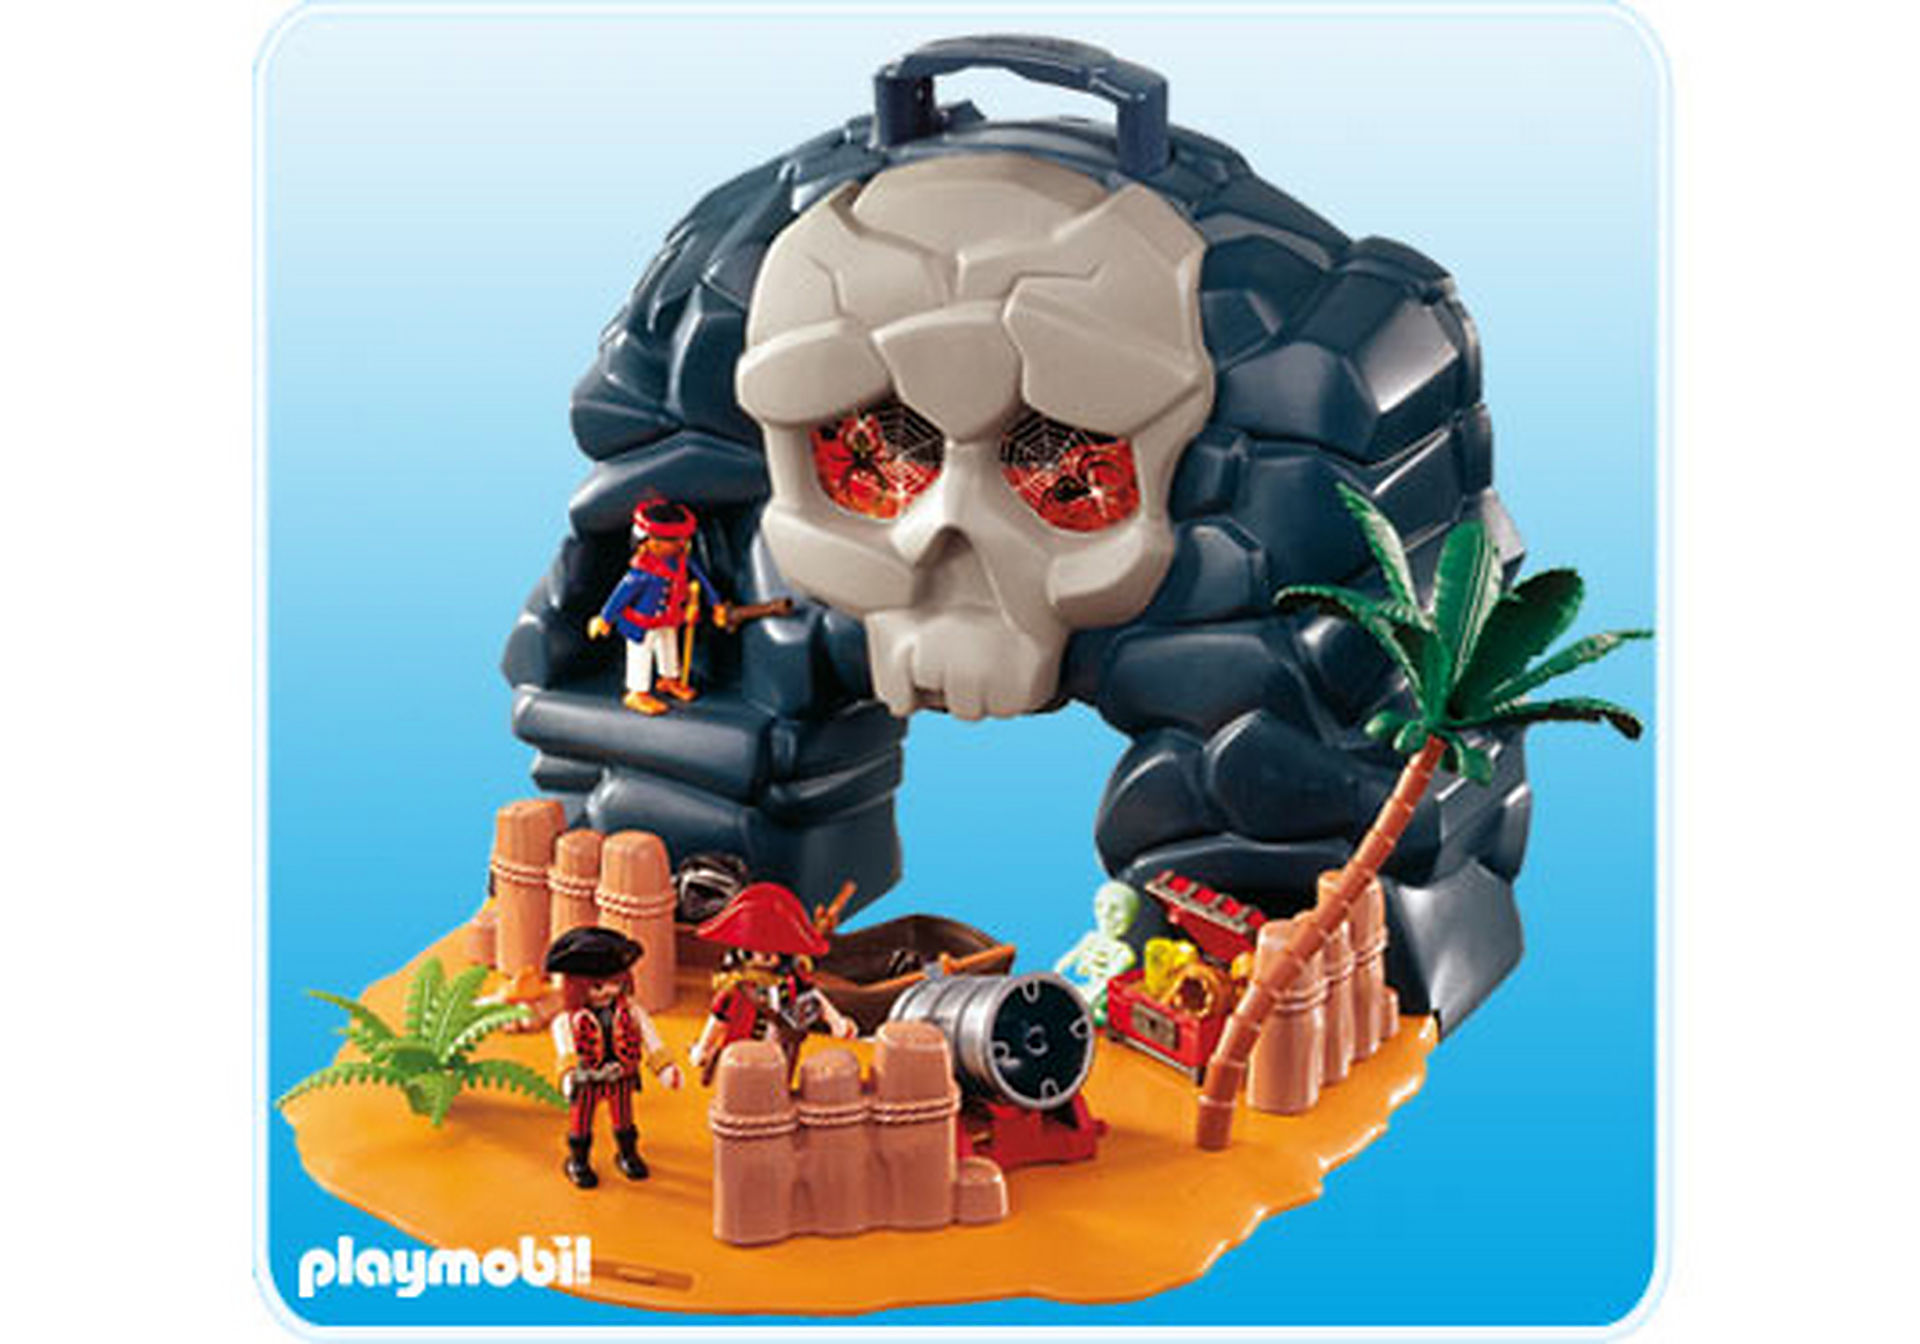 http://media.playmobil.com/i/playmobil/4443-A_product_detail/Ile au trésor des pirates en coffret